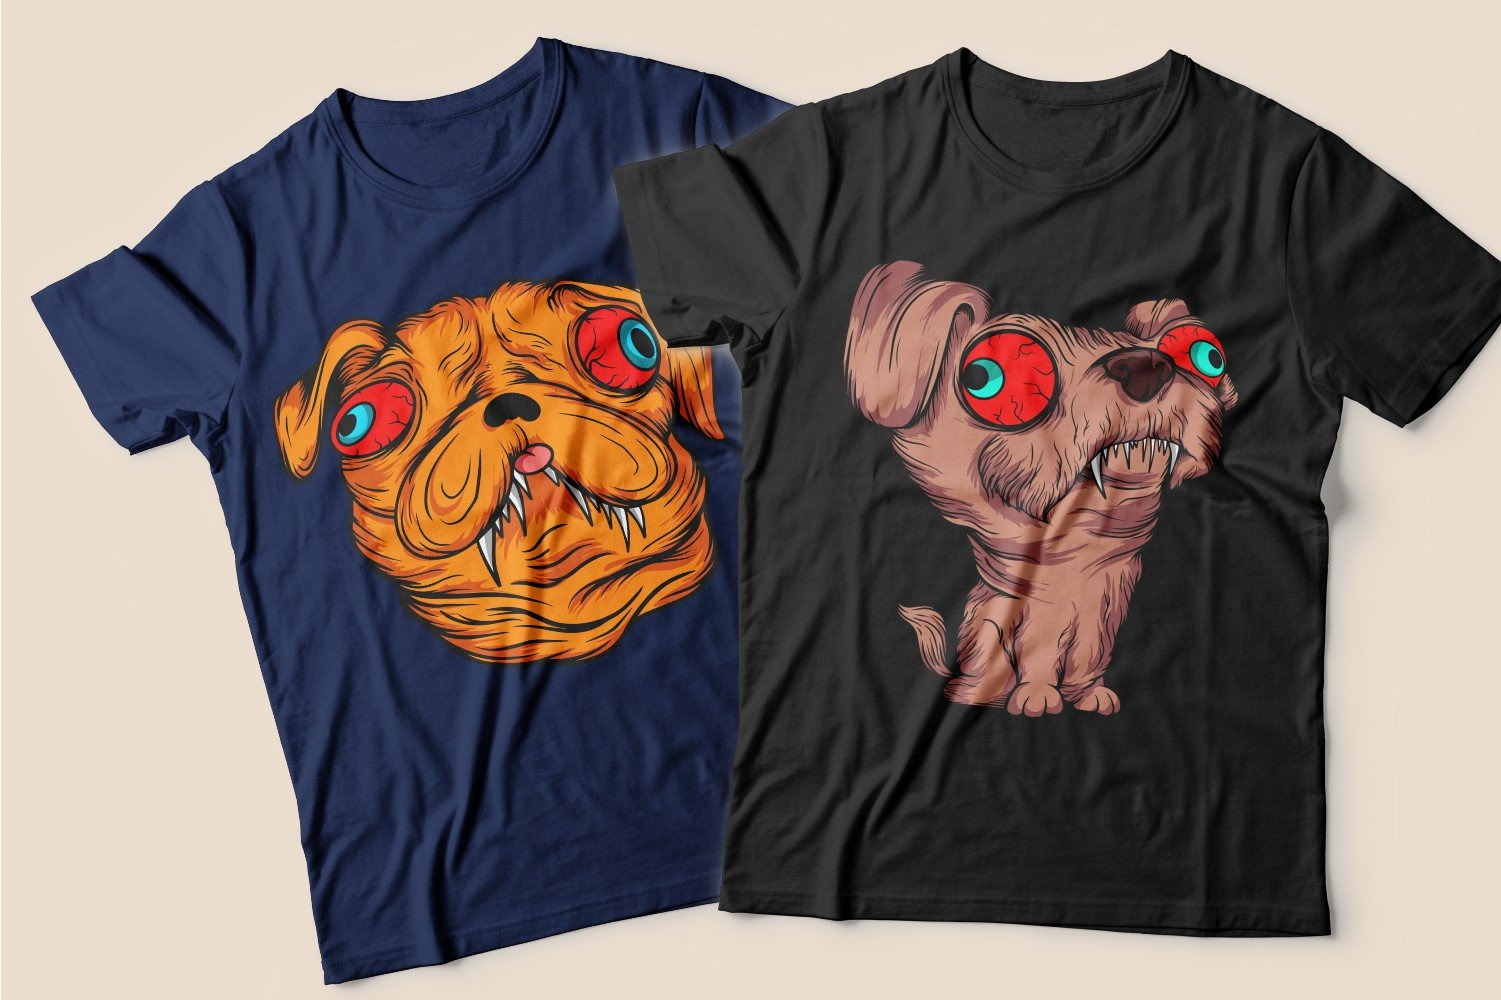 Two T-shirts: blue with a red head dog and black with a beige dog with red eyes.